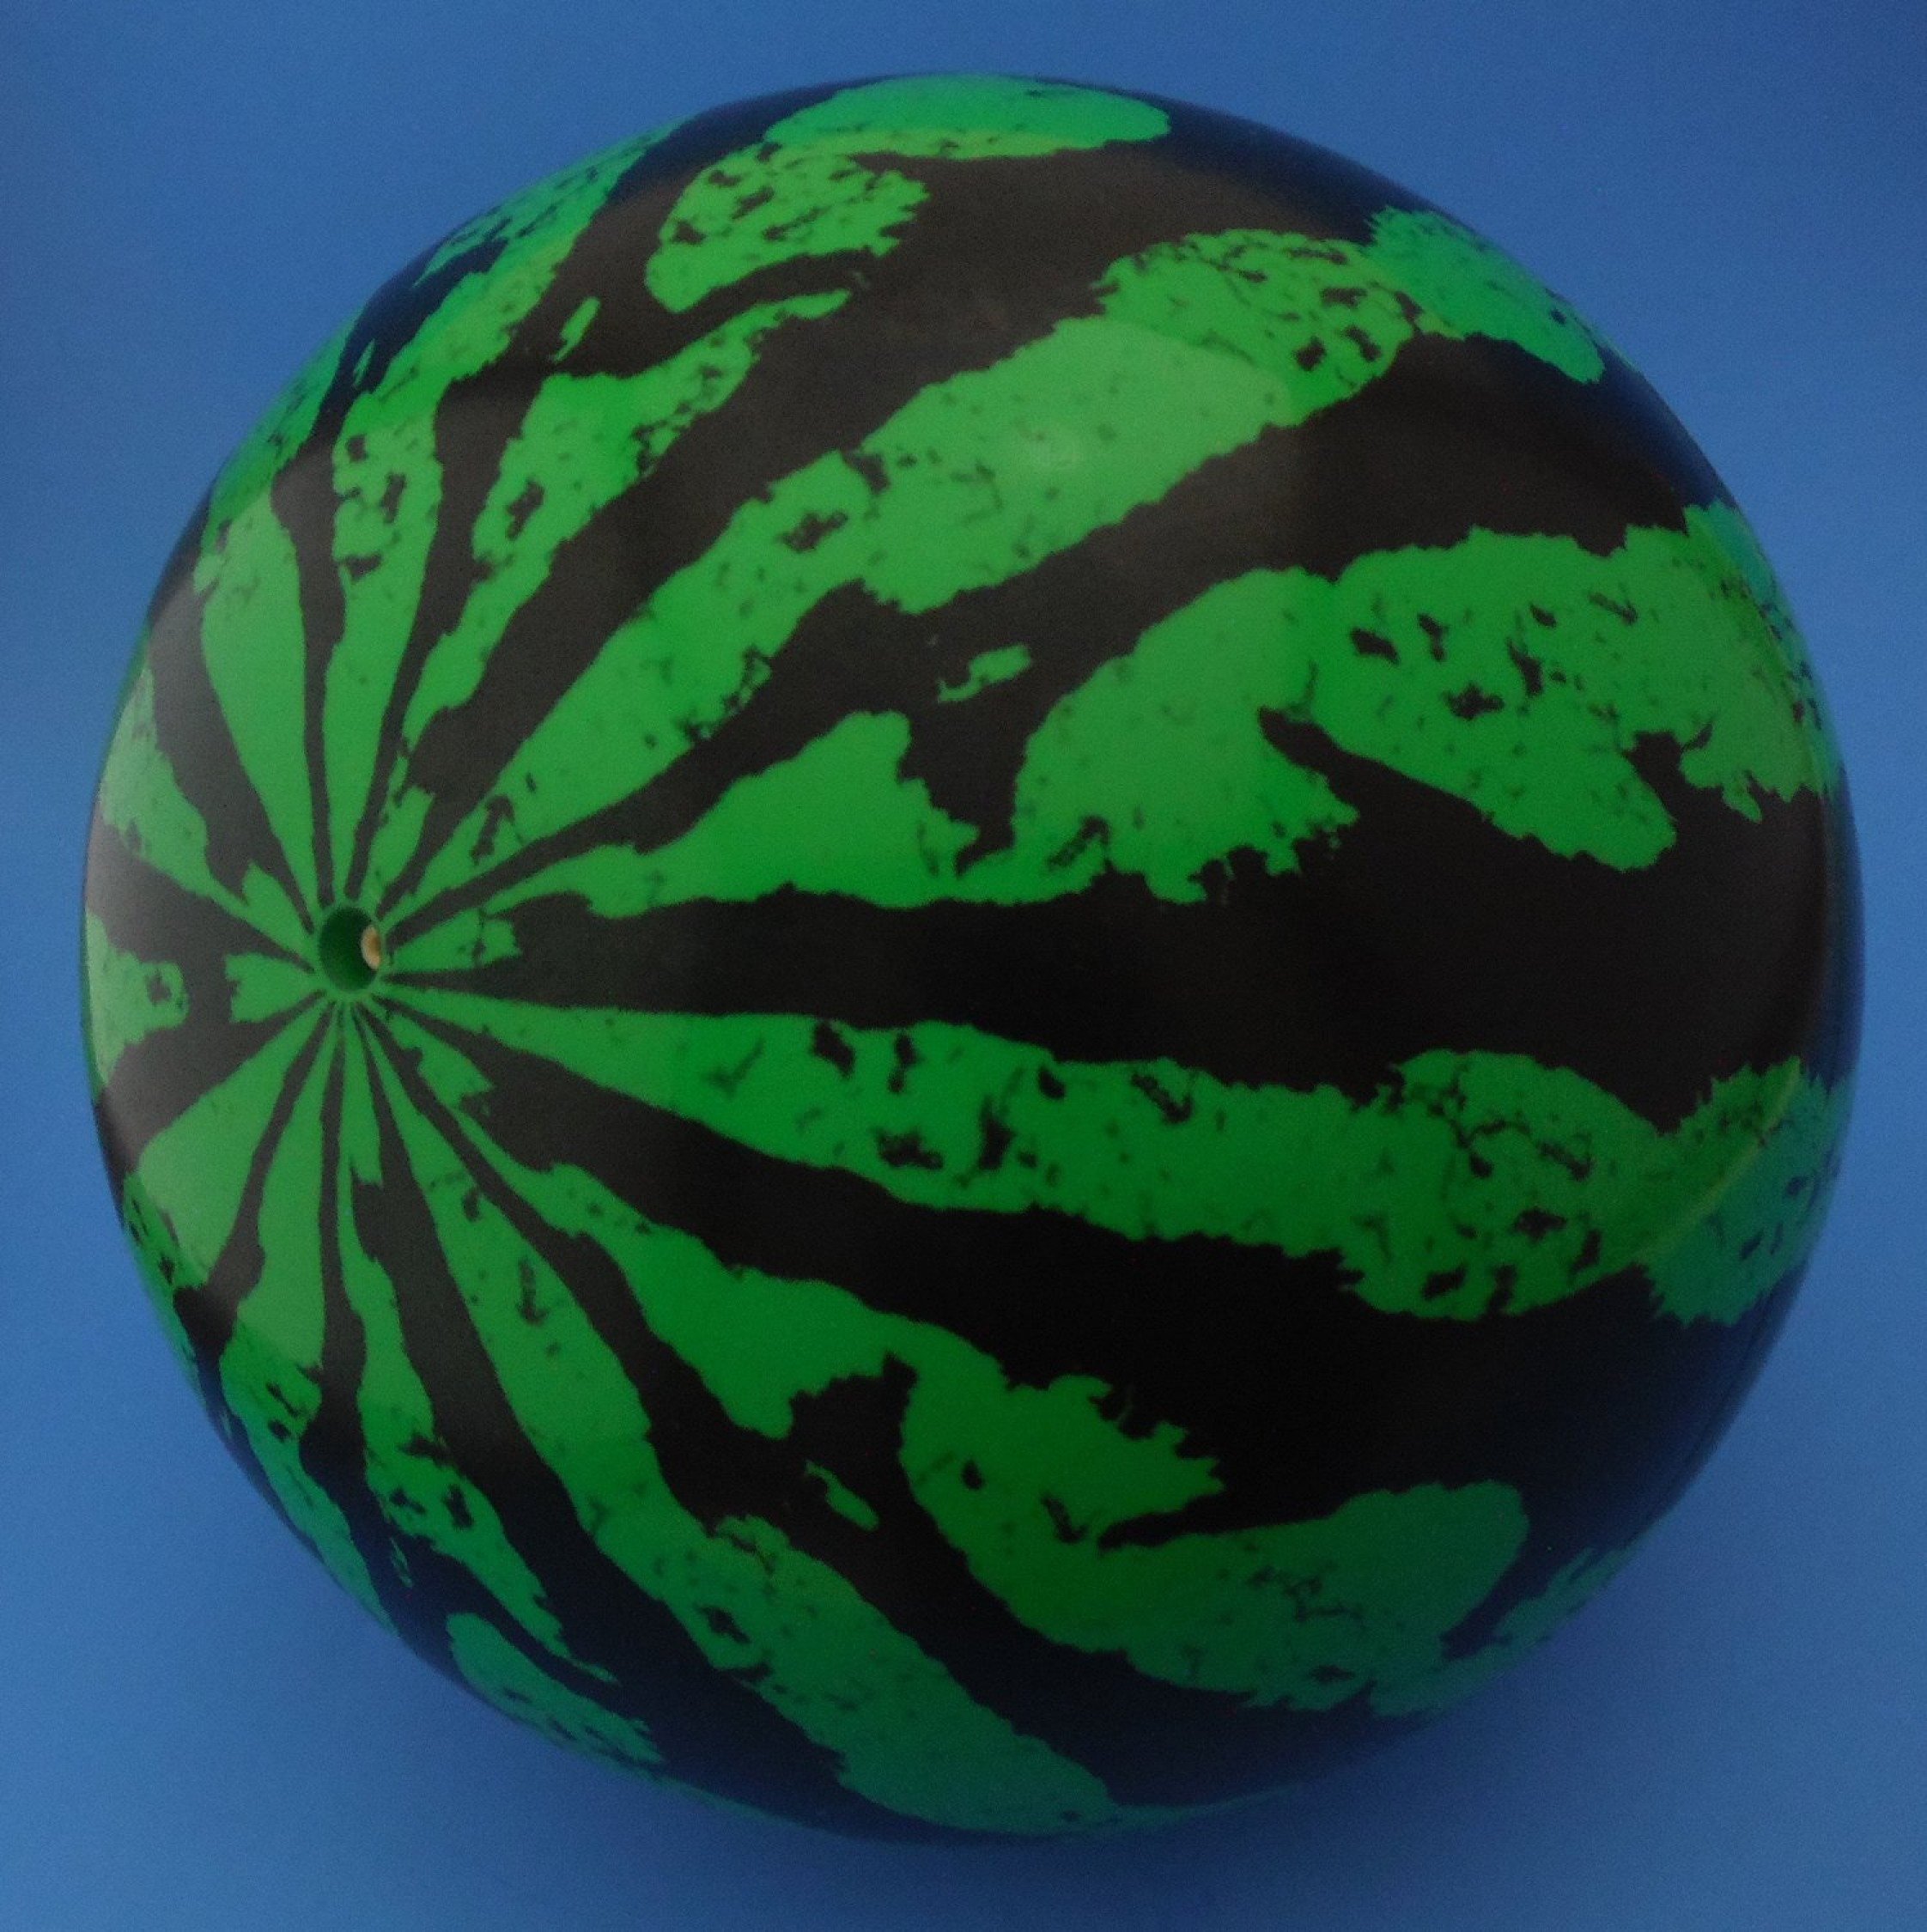 Swimming pool watermelon ball game summer kids children - Watermelon ball swimming pool game ...